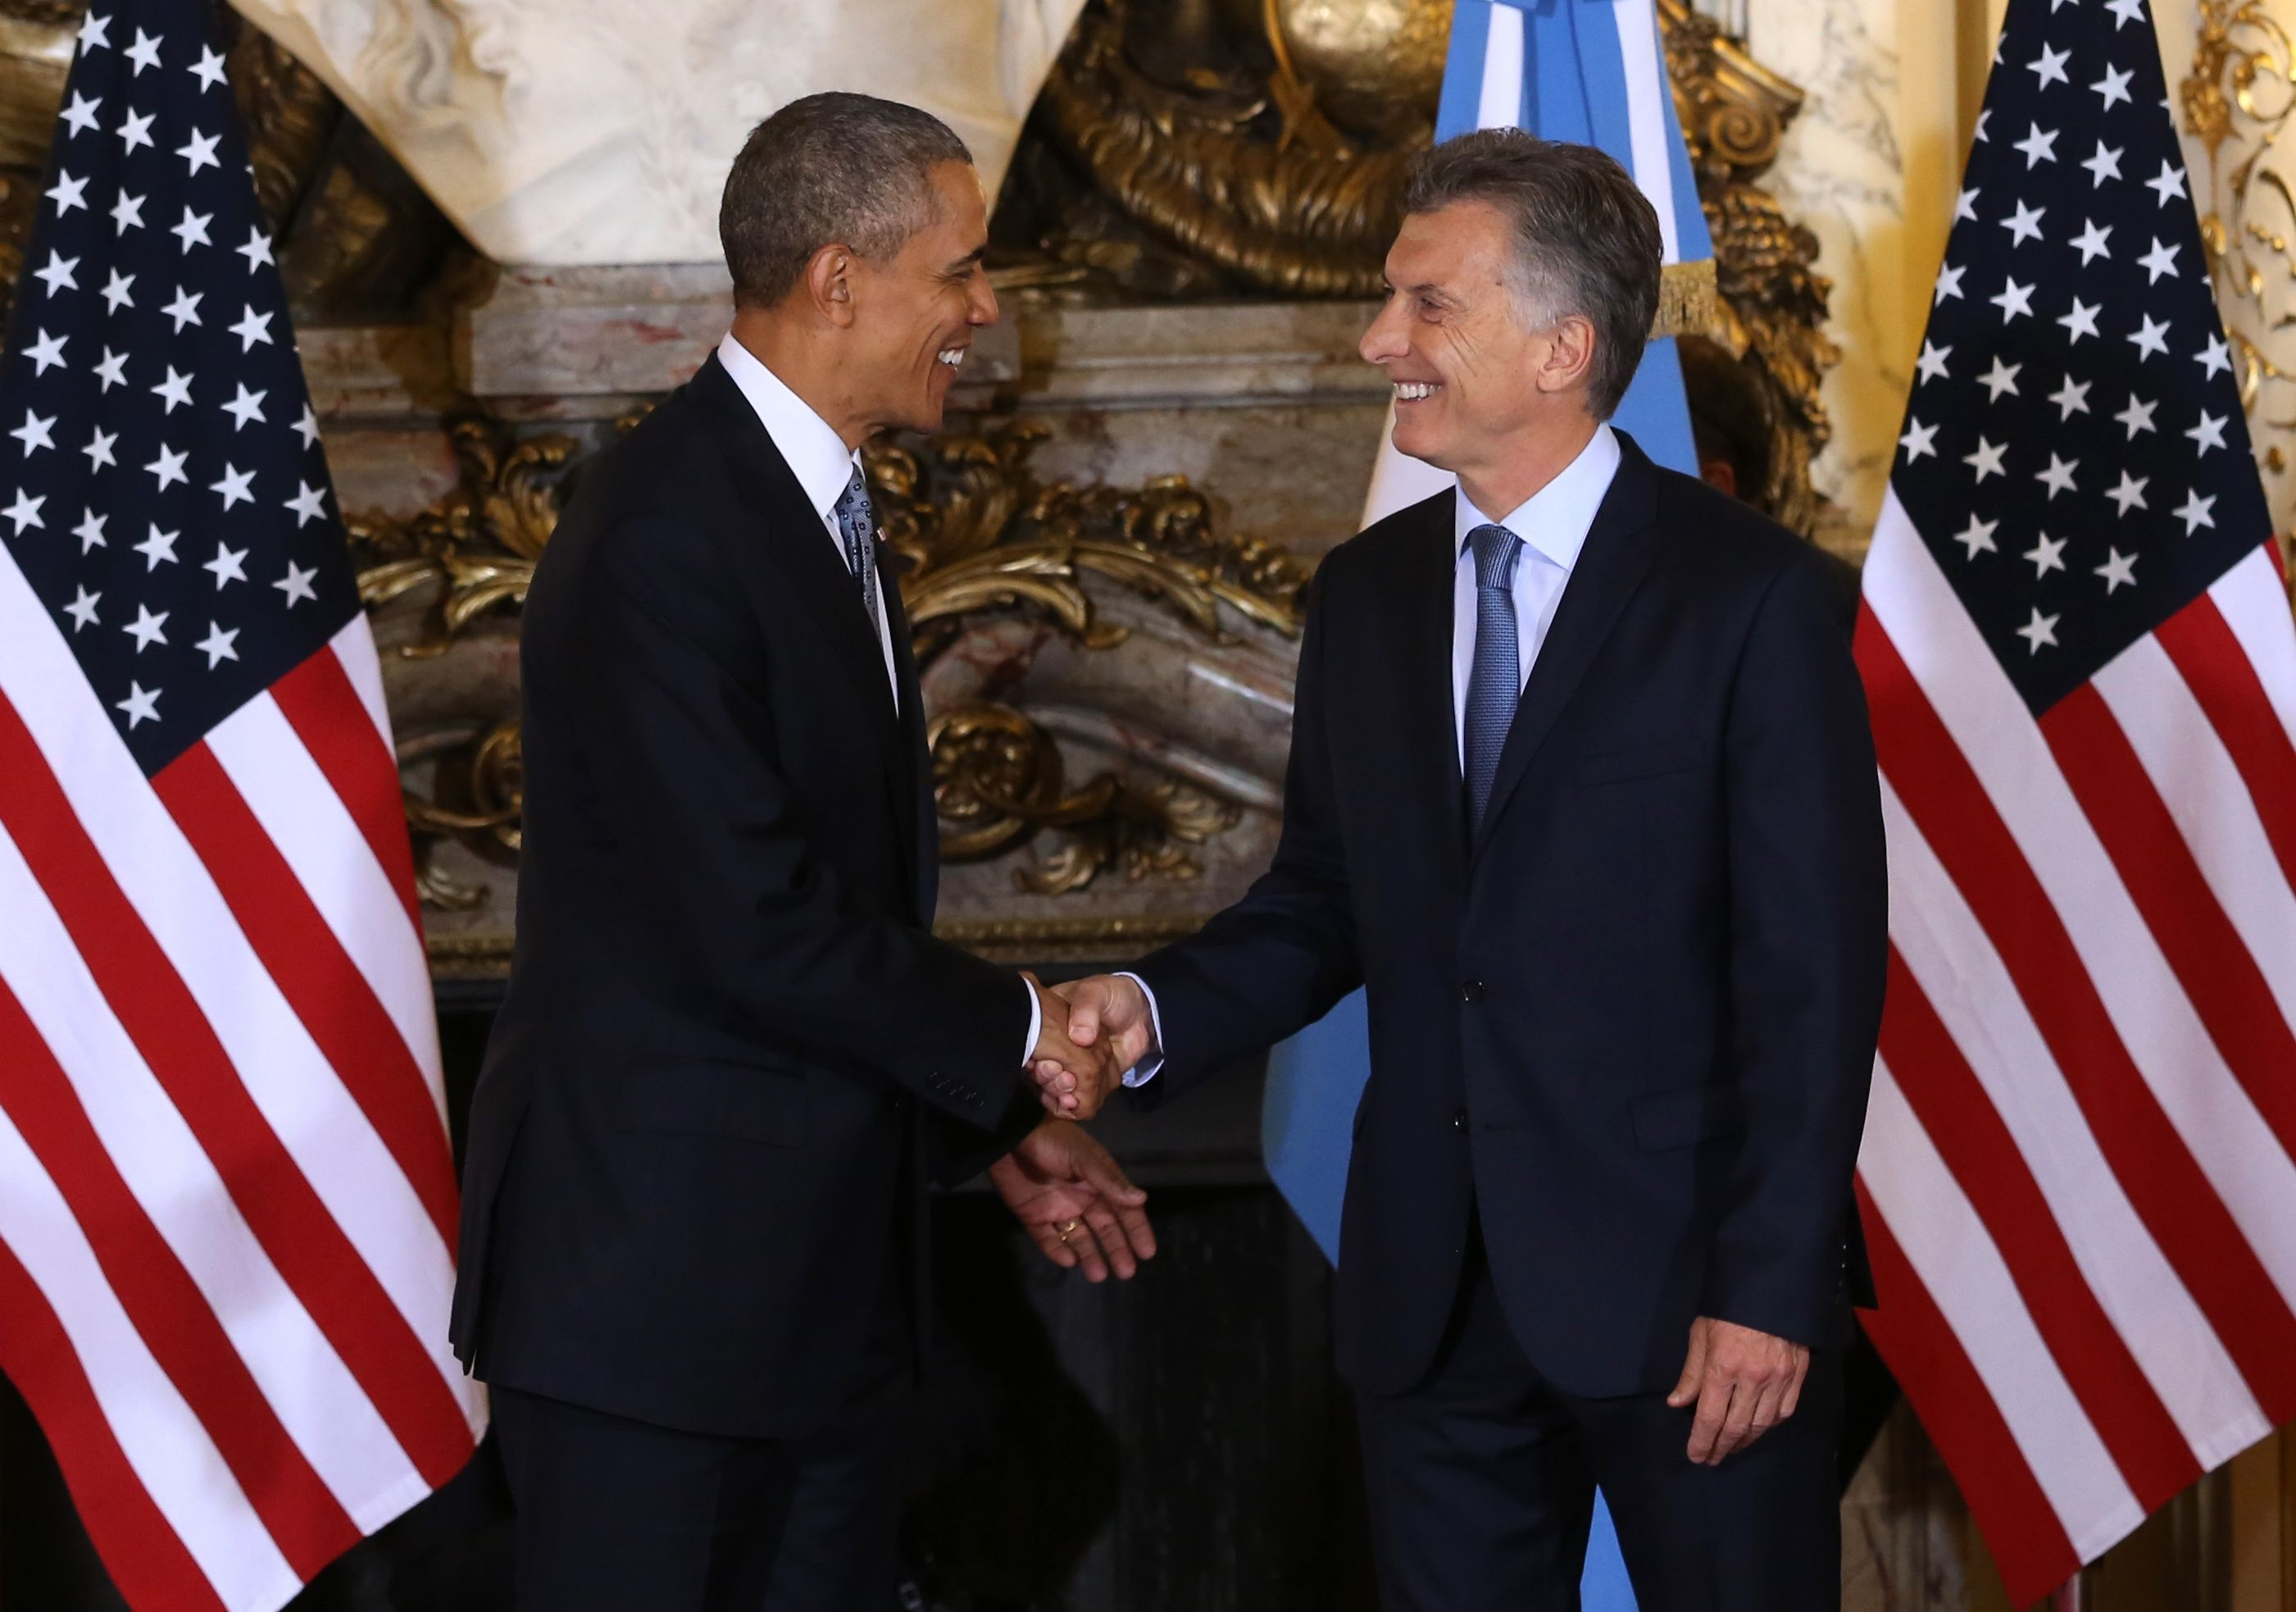 U.S. President Barack Obama meets with Argentina President Mauricio Macri during his March 2016 visit.